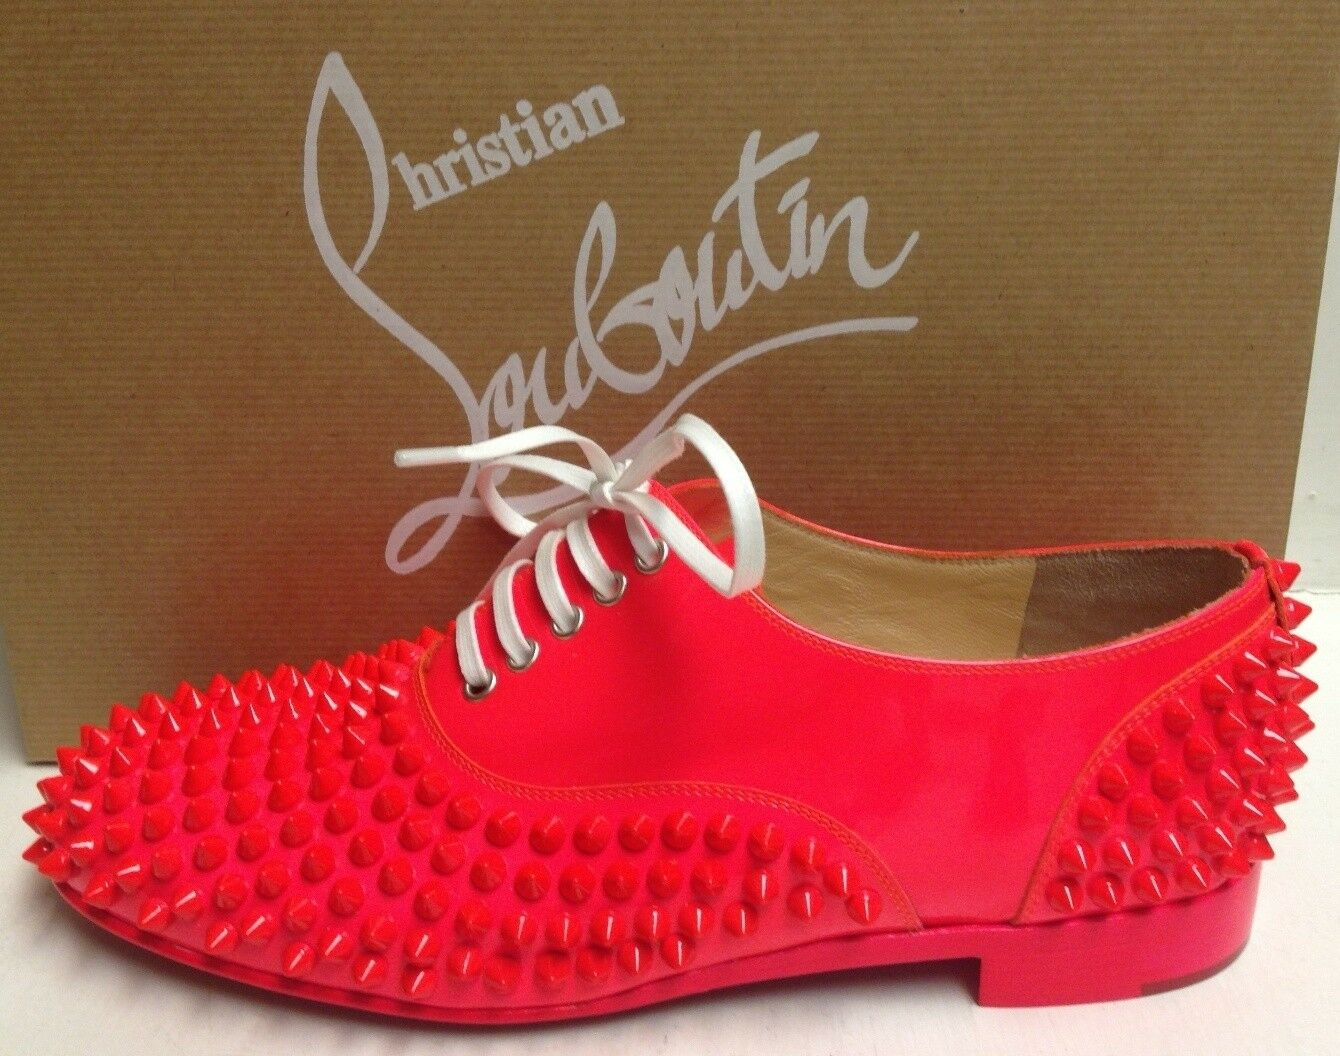 Christian Louboutin FROTdy 37 Flat Spikes Patent Fluo Oxfords Schuhes 37 FROTdy 0967d7